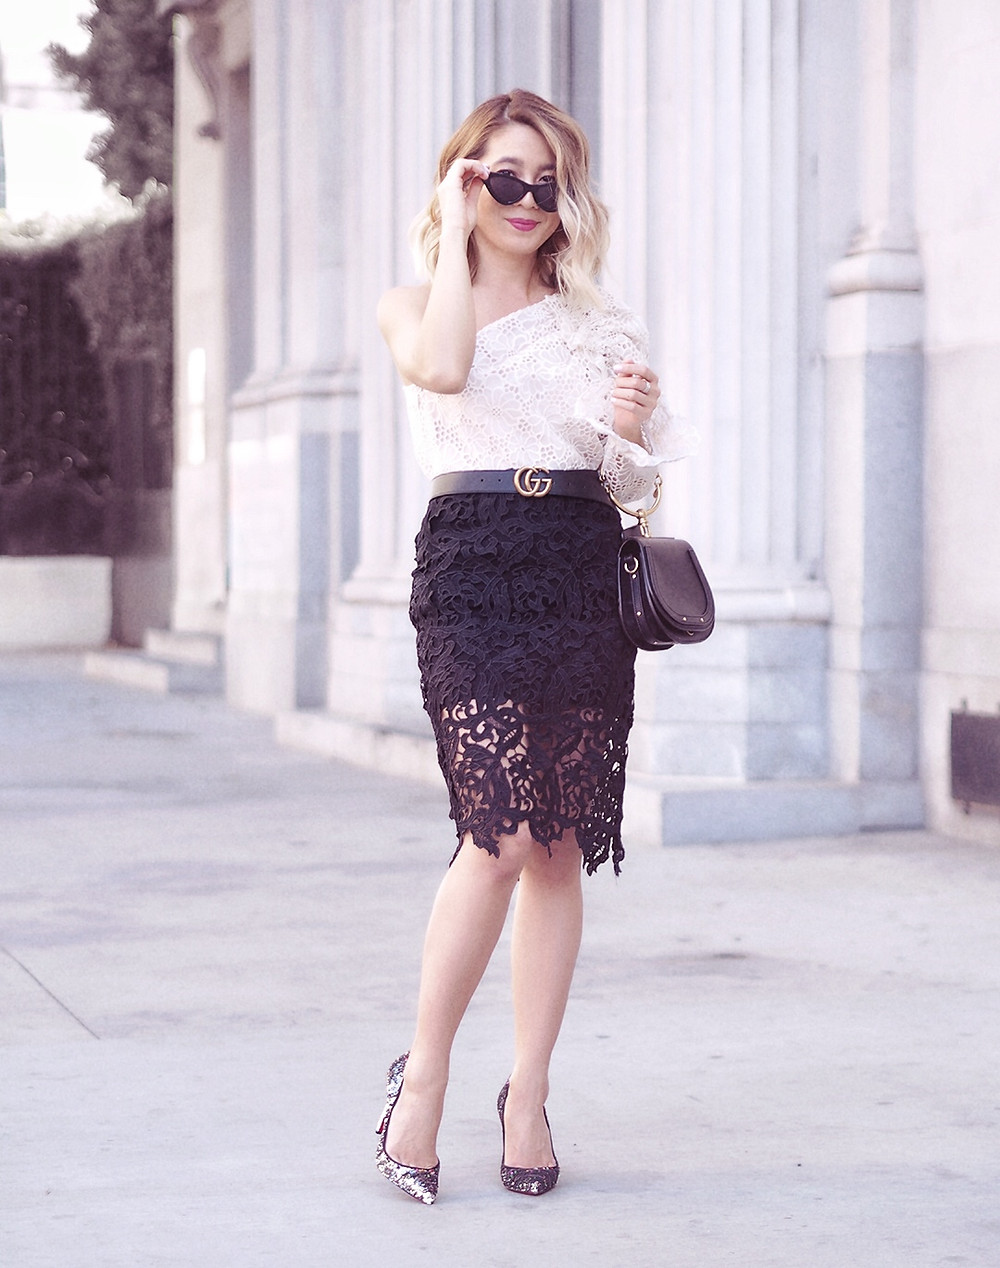 Lace One Shoulder Top | Lam in Louboutins